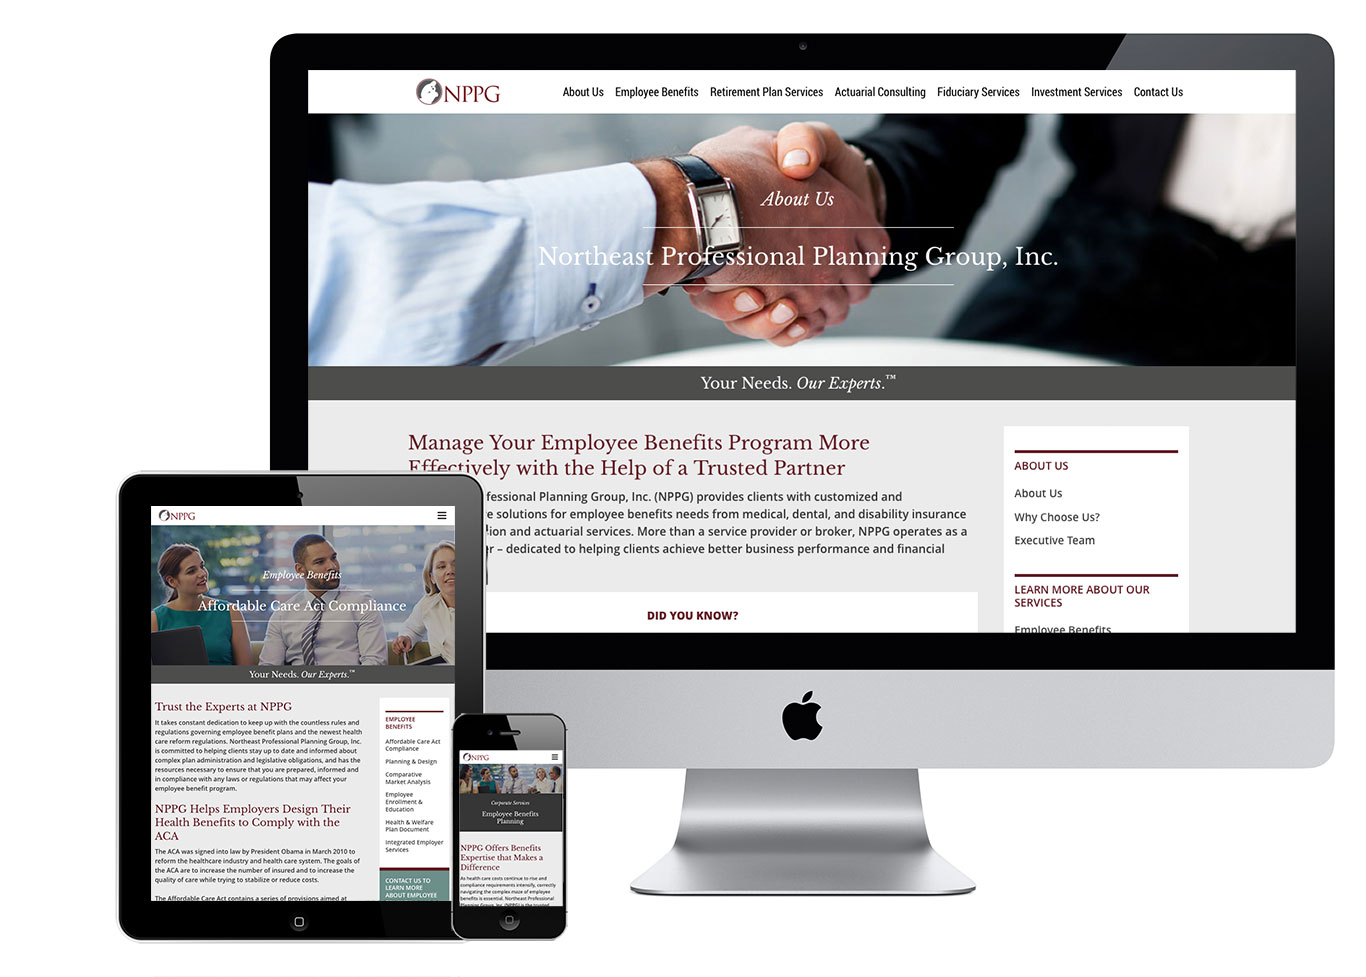 NPPG financial services, responsive website design adapts to any device